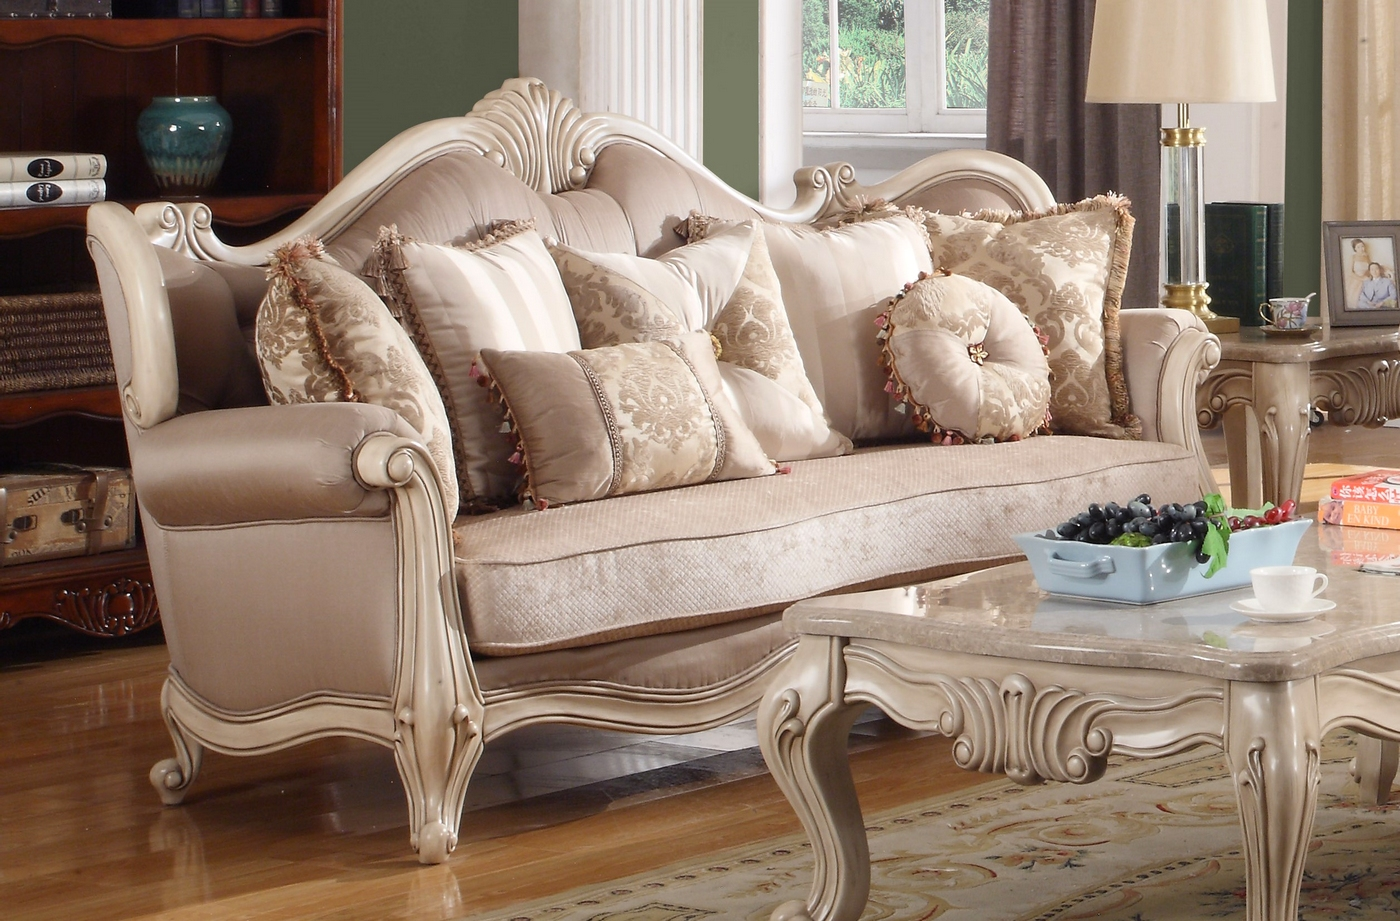 Marseille French Provincial Sofa Loveseat Set In Chenille Birch Wood